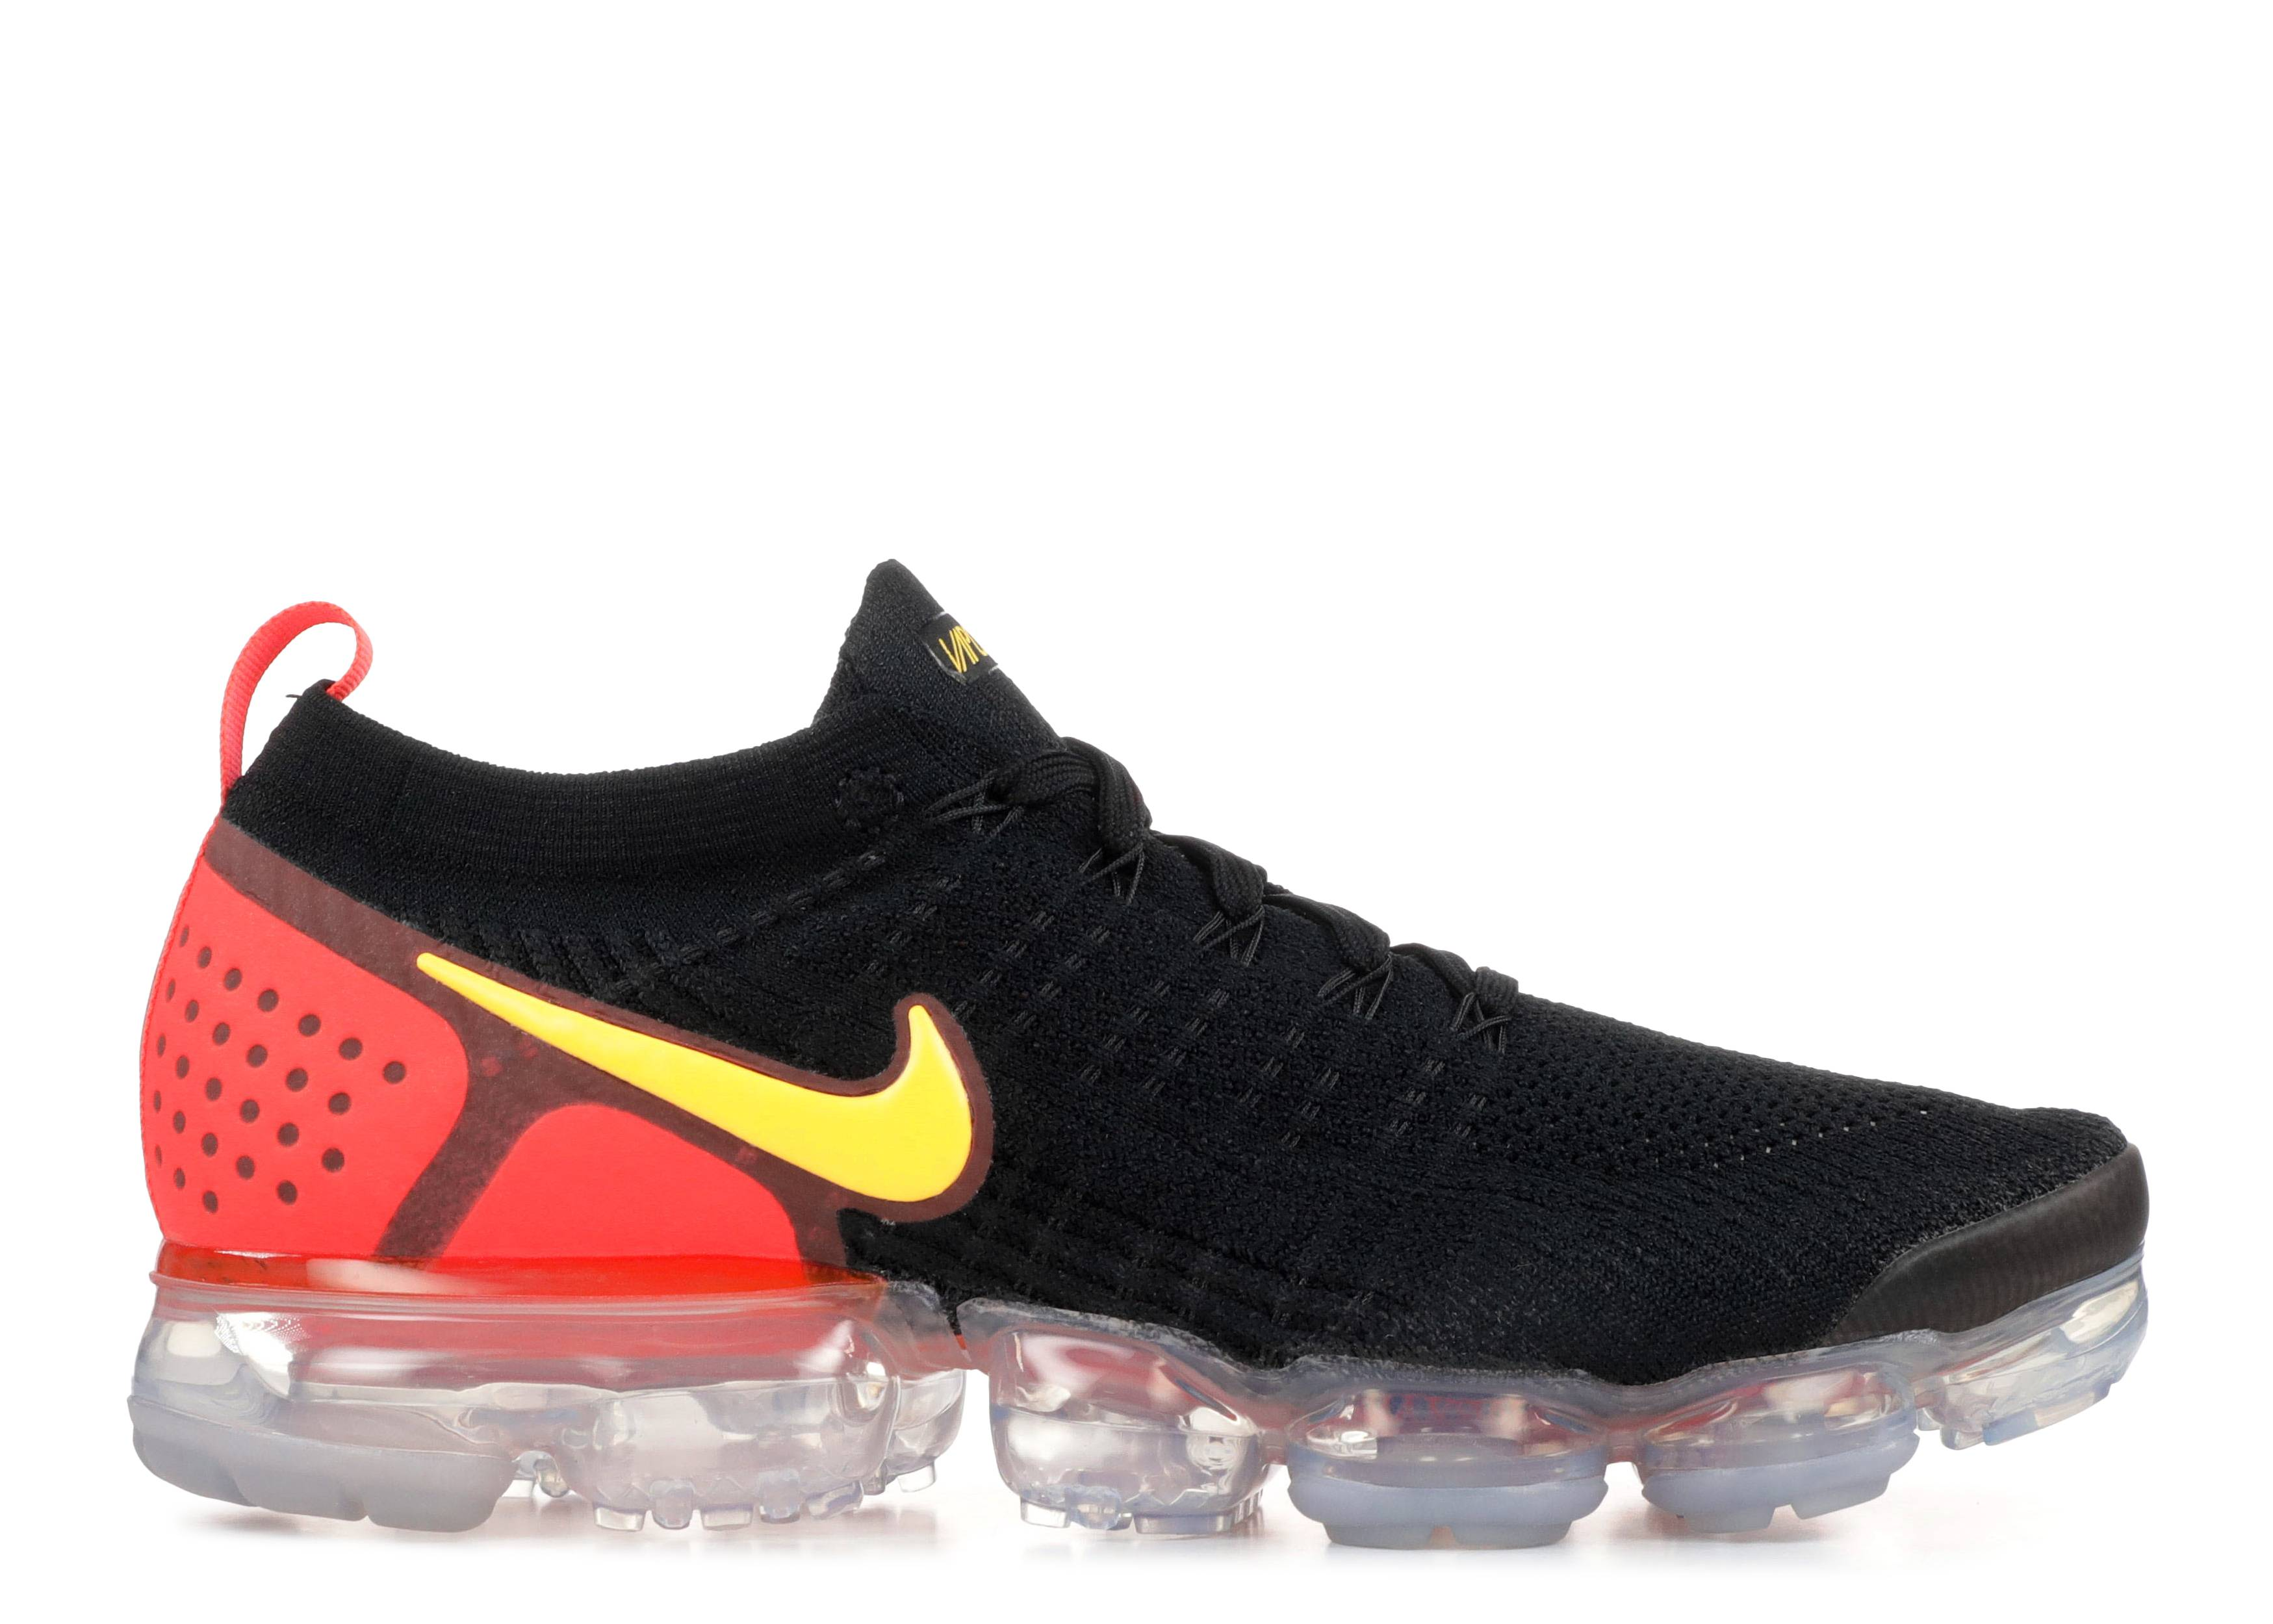 vapormax flyknit black and orange